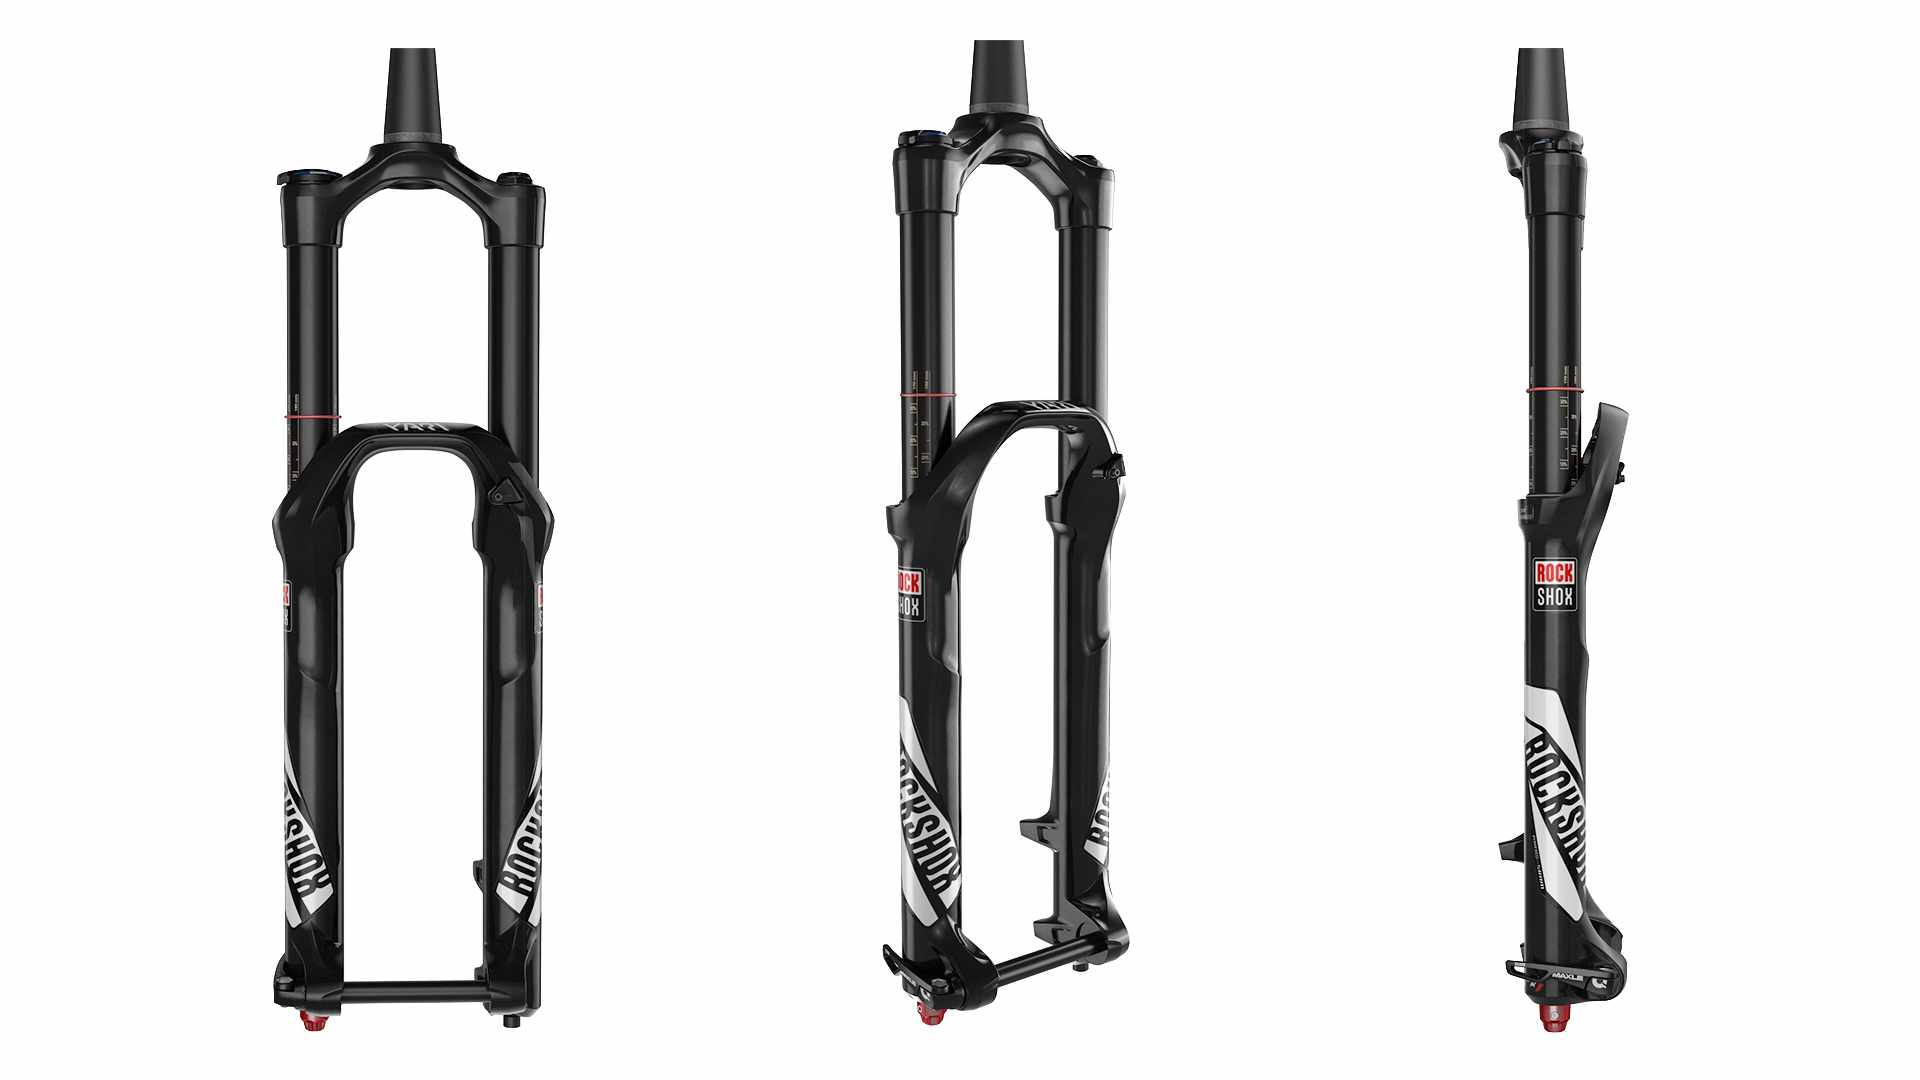 Rockshox introduce the new Yari for 2016